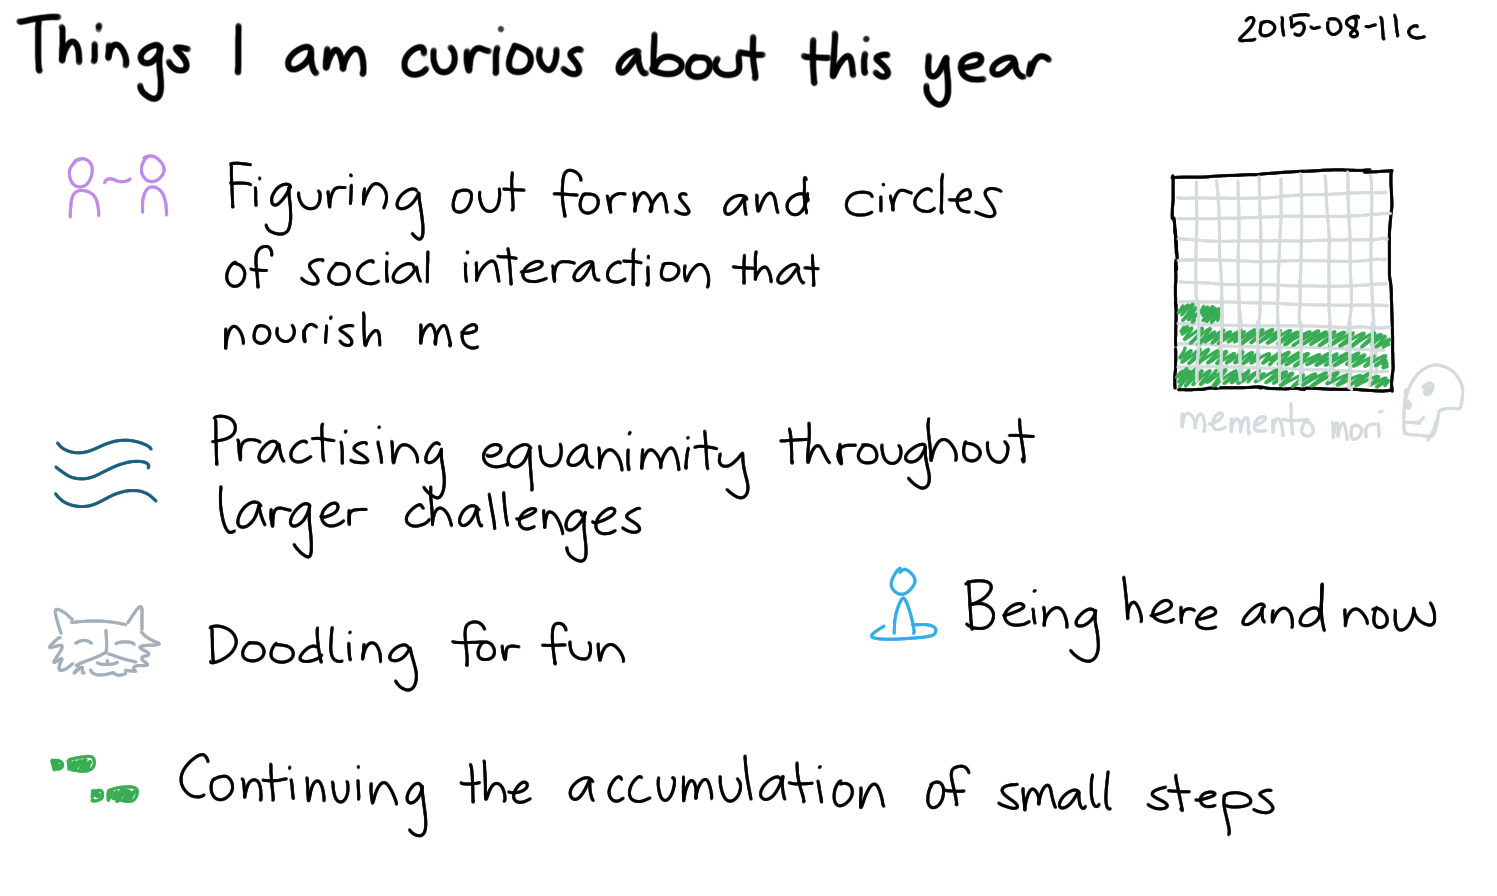 2015-08-11c Things I am curious about this year -- index card #planning.png